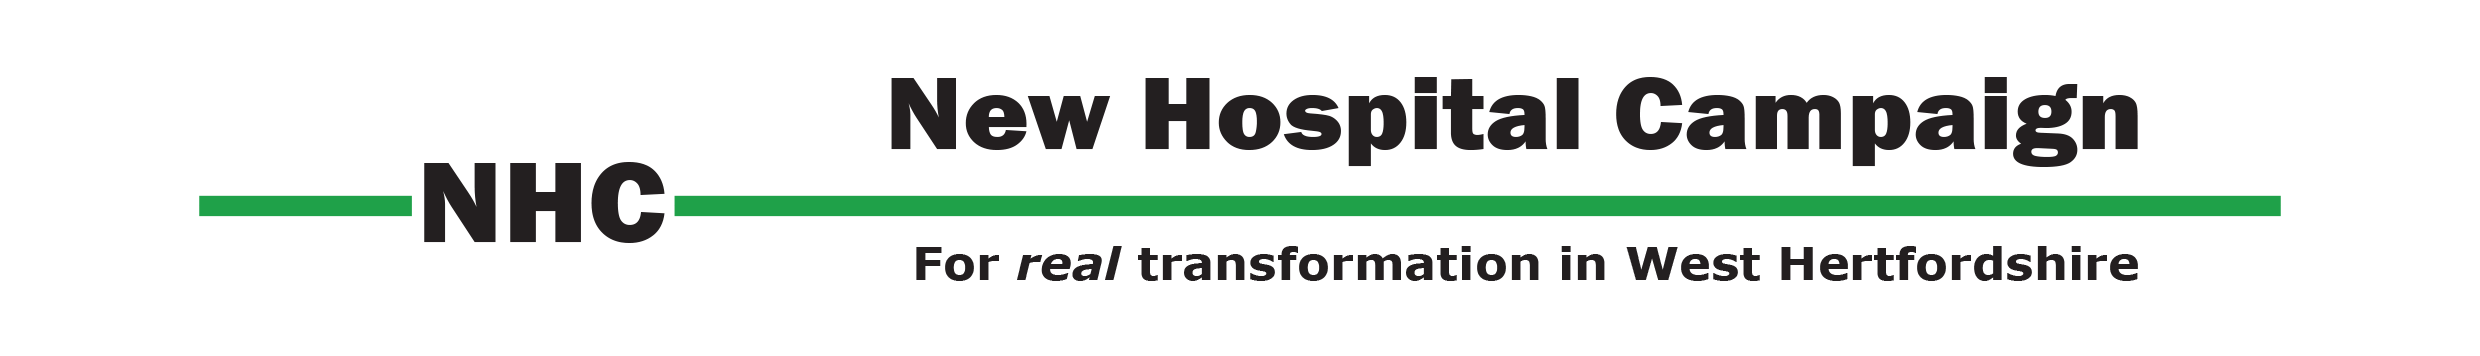 New Hospital Campaign for West Hertfordshire